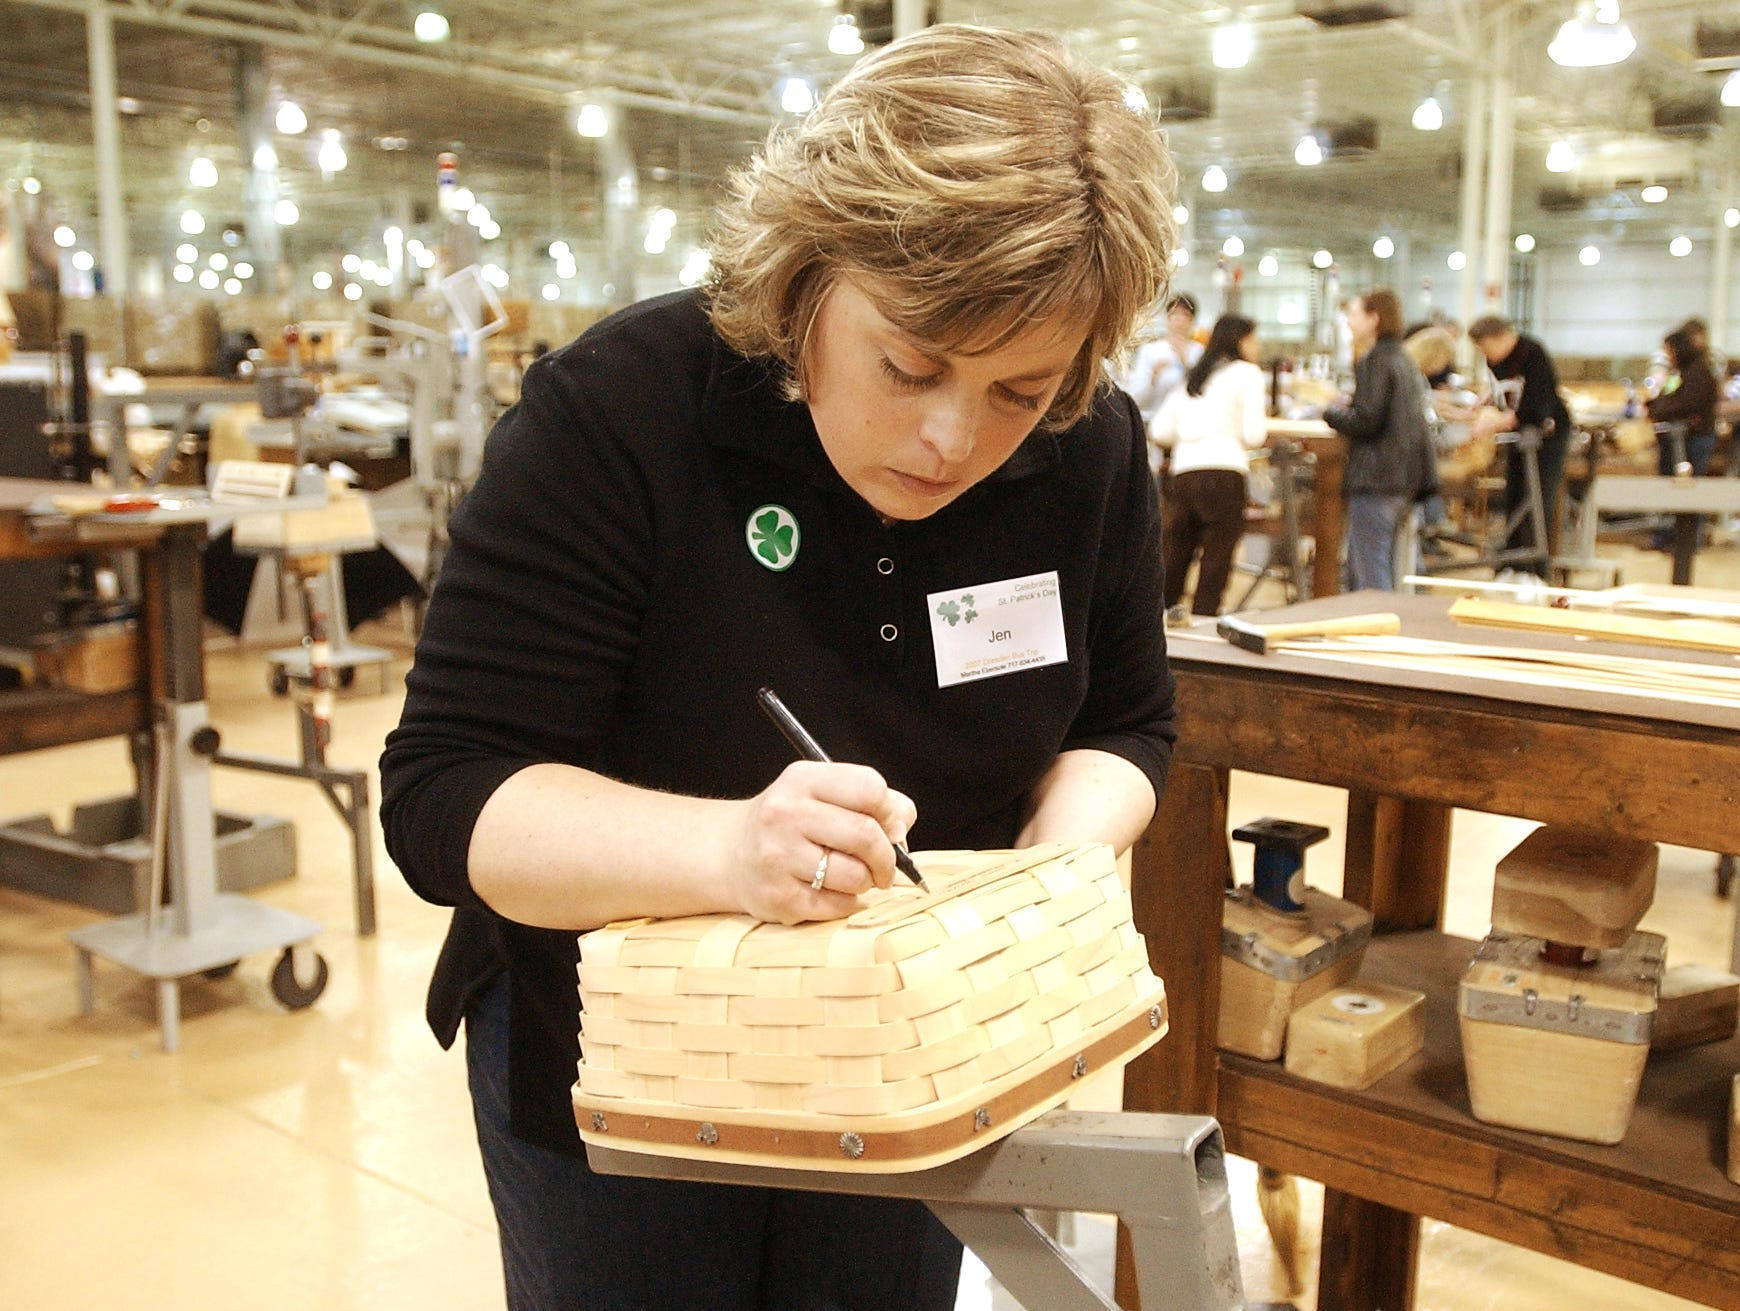 Jennifer Kiner, of Newville, PA. signs her basket, a Longaberger tradition, during the Seasonal Make A Basket at the Longerberger Homestead's Homestead Madness event in Frazeysburg in 2007.